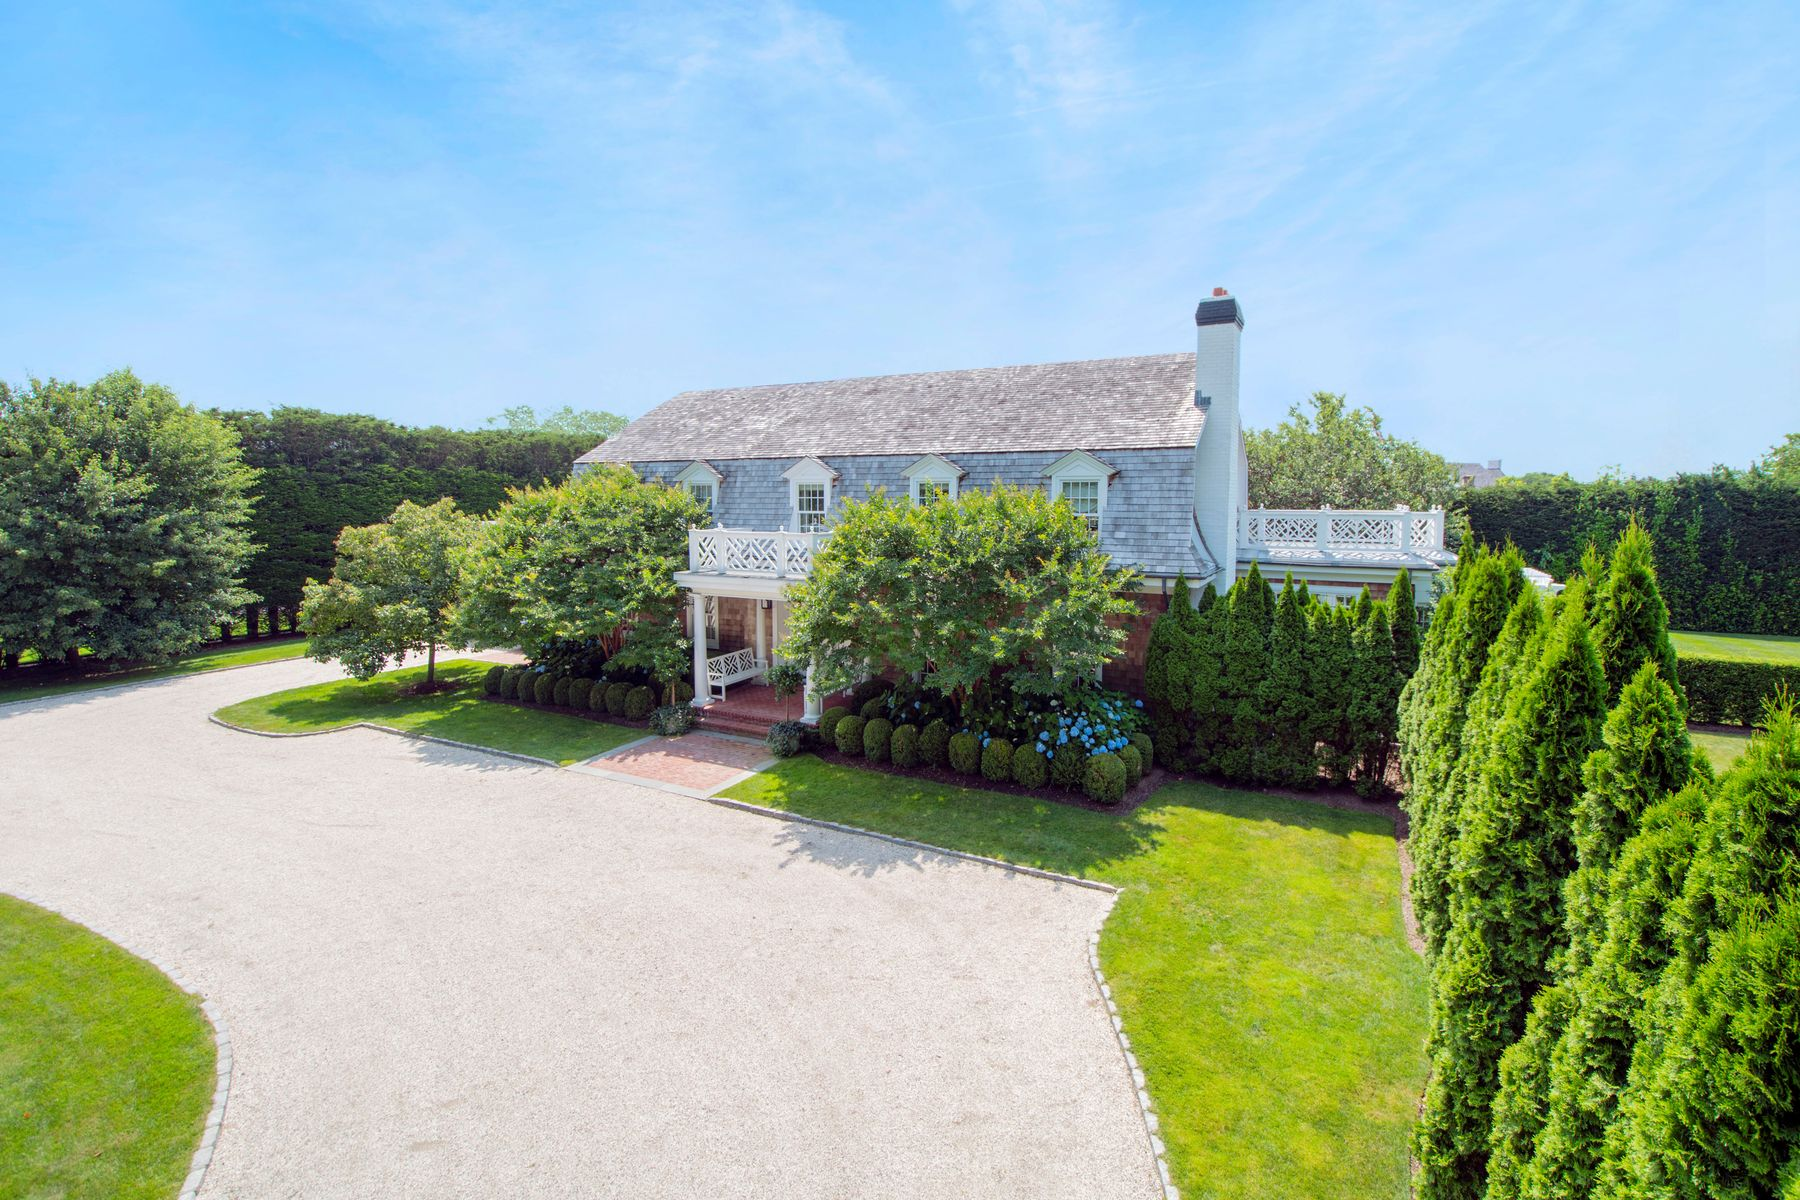 Property for Sale at Ideal Southampton Village Home with Pool 88 Huntting Street Southampton, New York 11968 United States